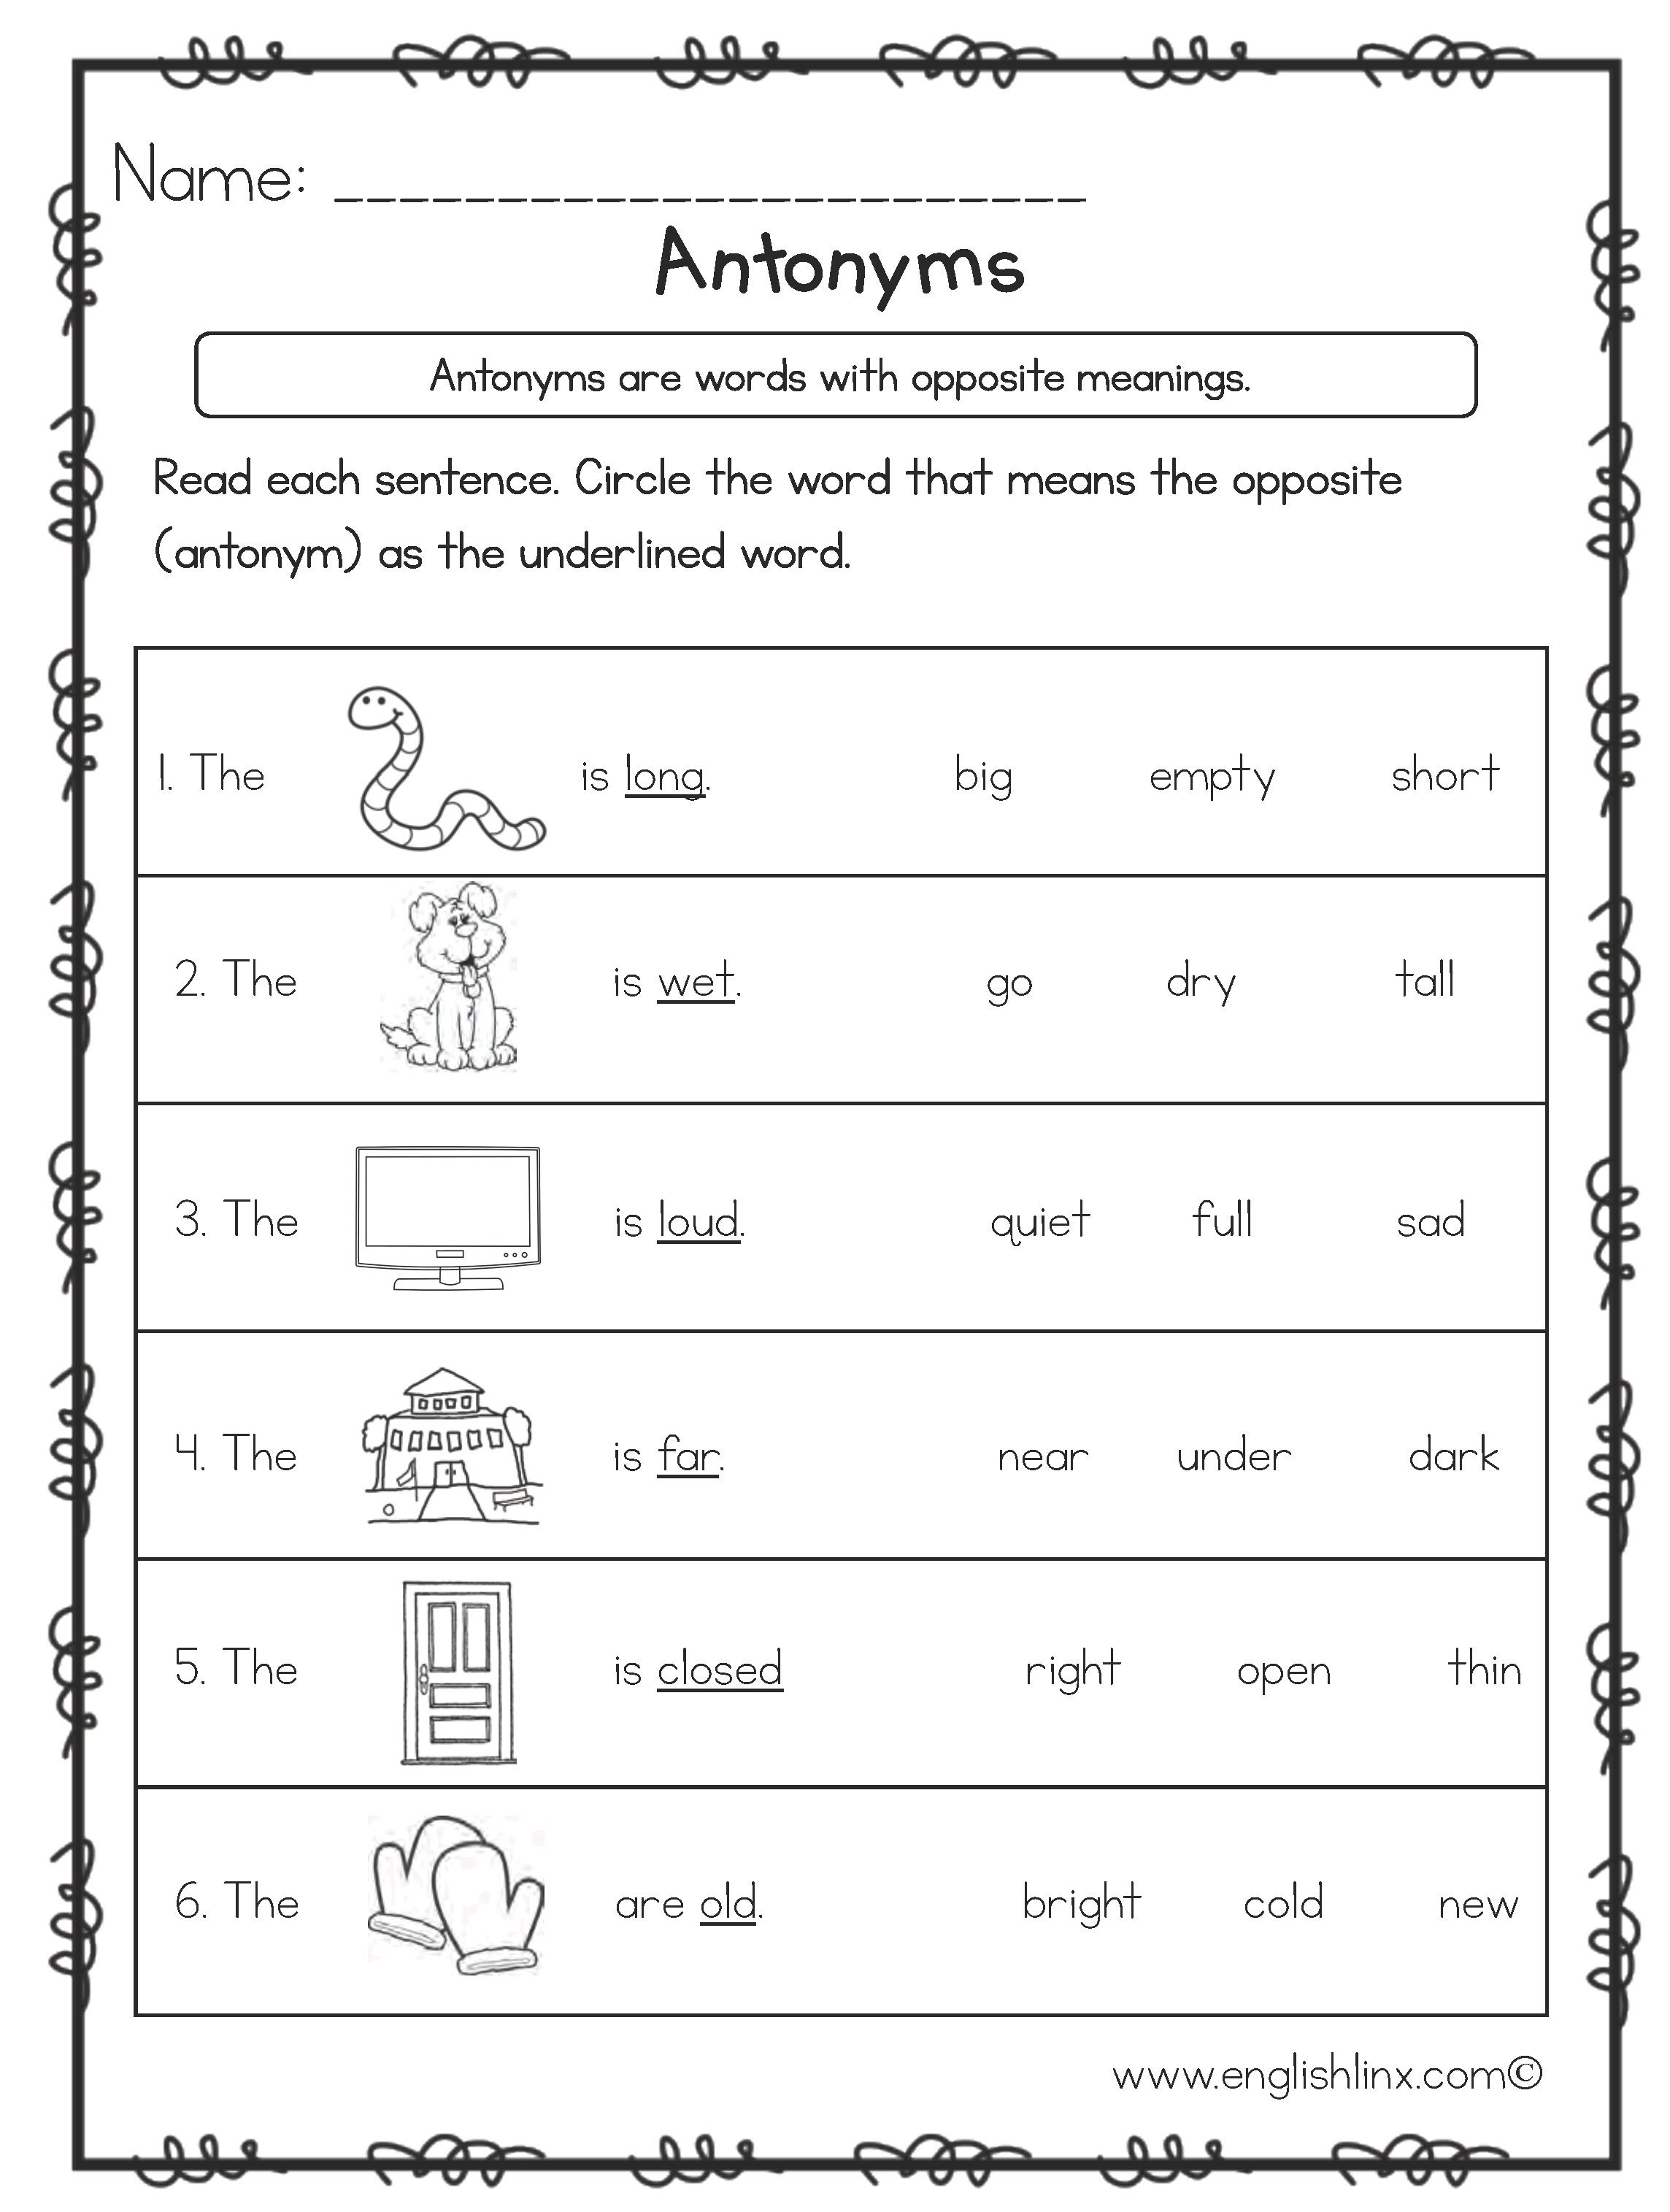 Englishlinx | Antonyms Worksheets | Free Printable Antonym Worksheets